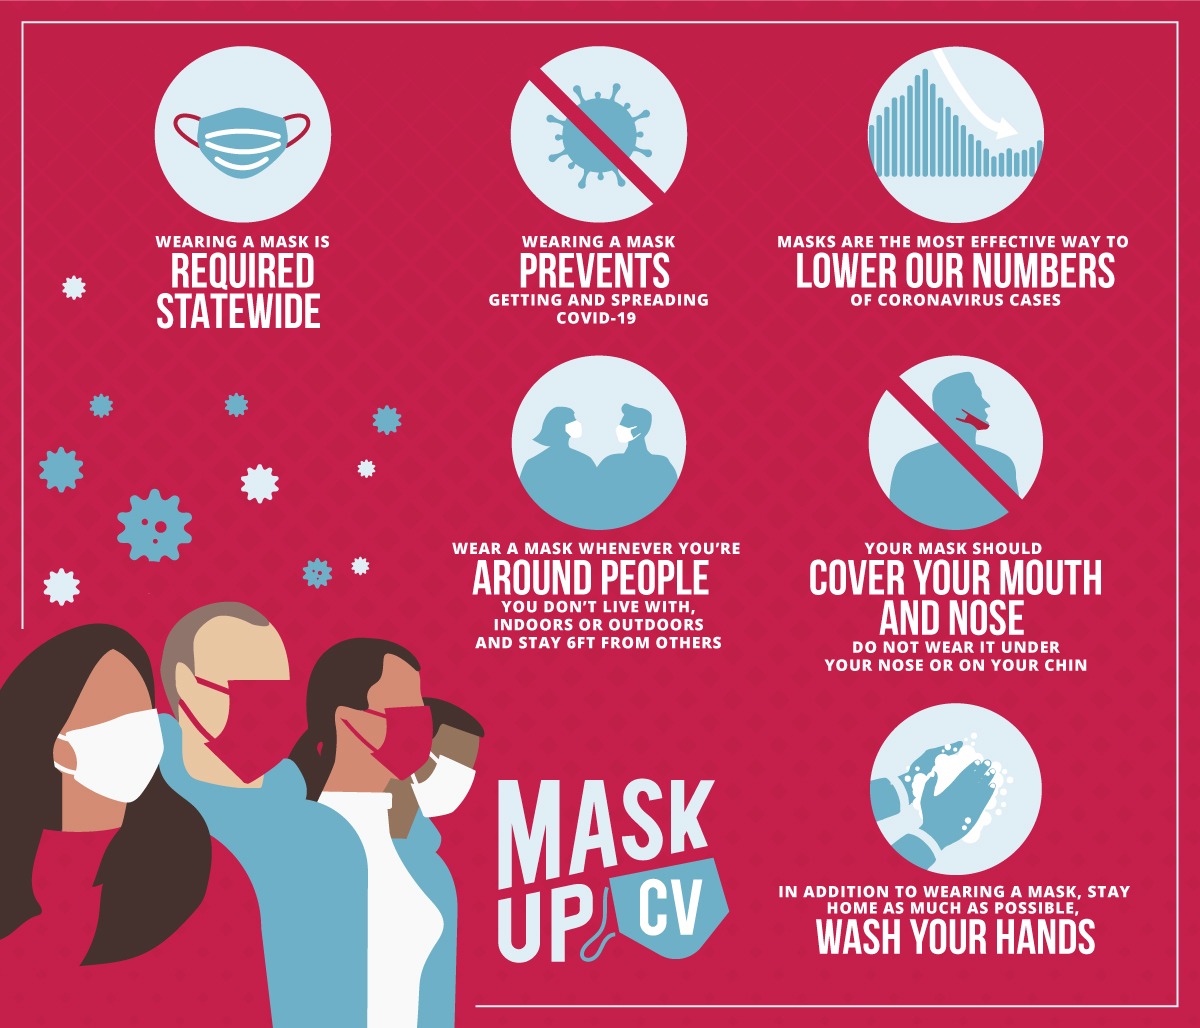 MaskUp CV | Wearing a mask is required statewide. Wearing a mask prevents getting and spreading covid-19. Masks are the most effective way to lower our numbers of coronavirus cases. Wear a mask whenever you're around people you don't live with, indoors or outdoors and stay 6 ft from others. Your mask should cover your mouth and nose. Do not wear it under your nose or on your chin. In addition to wearing a mask, stay home as much as possible, and wash your hands.